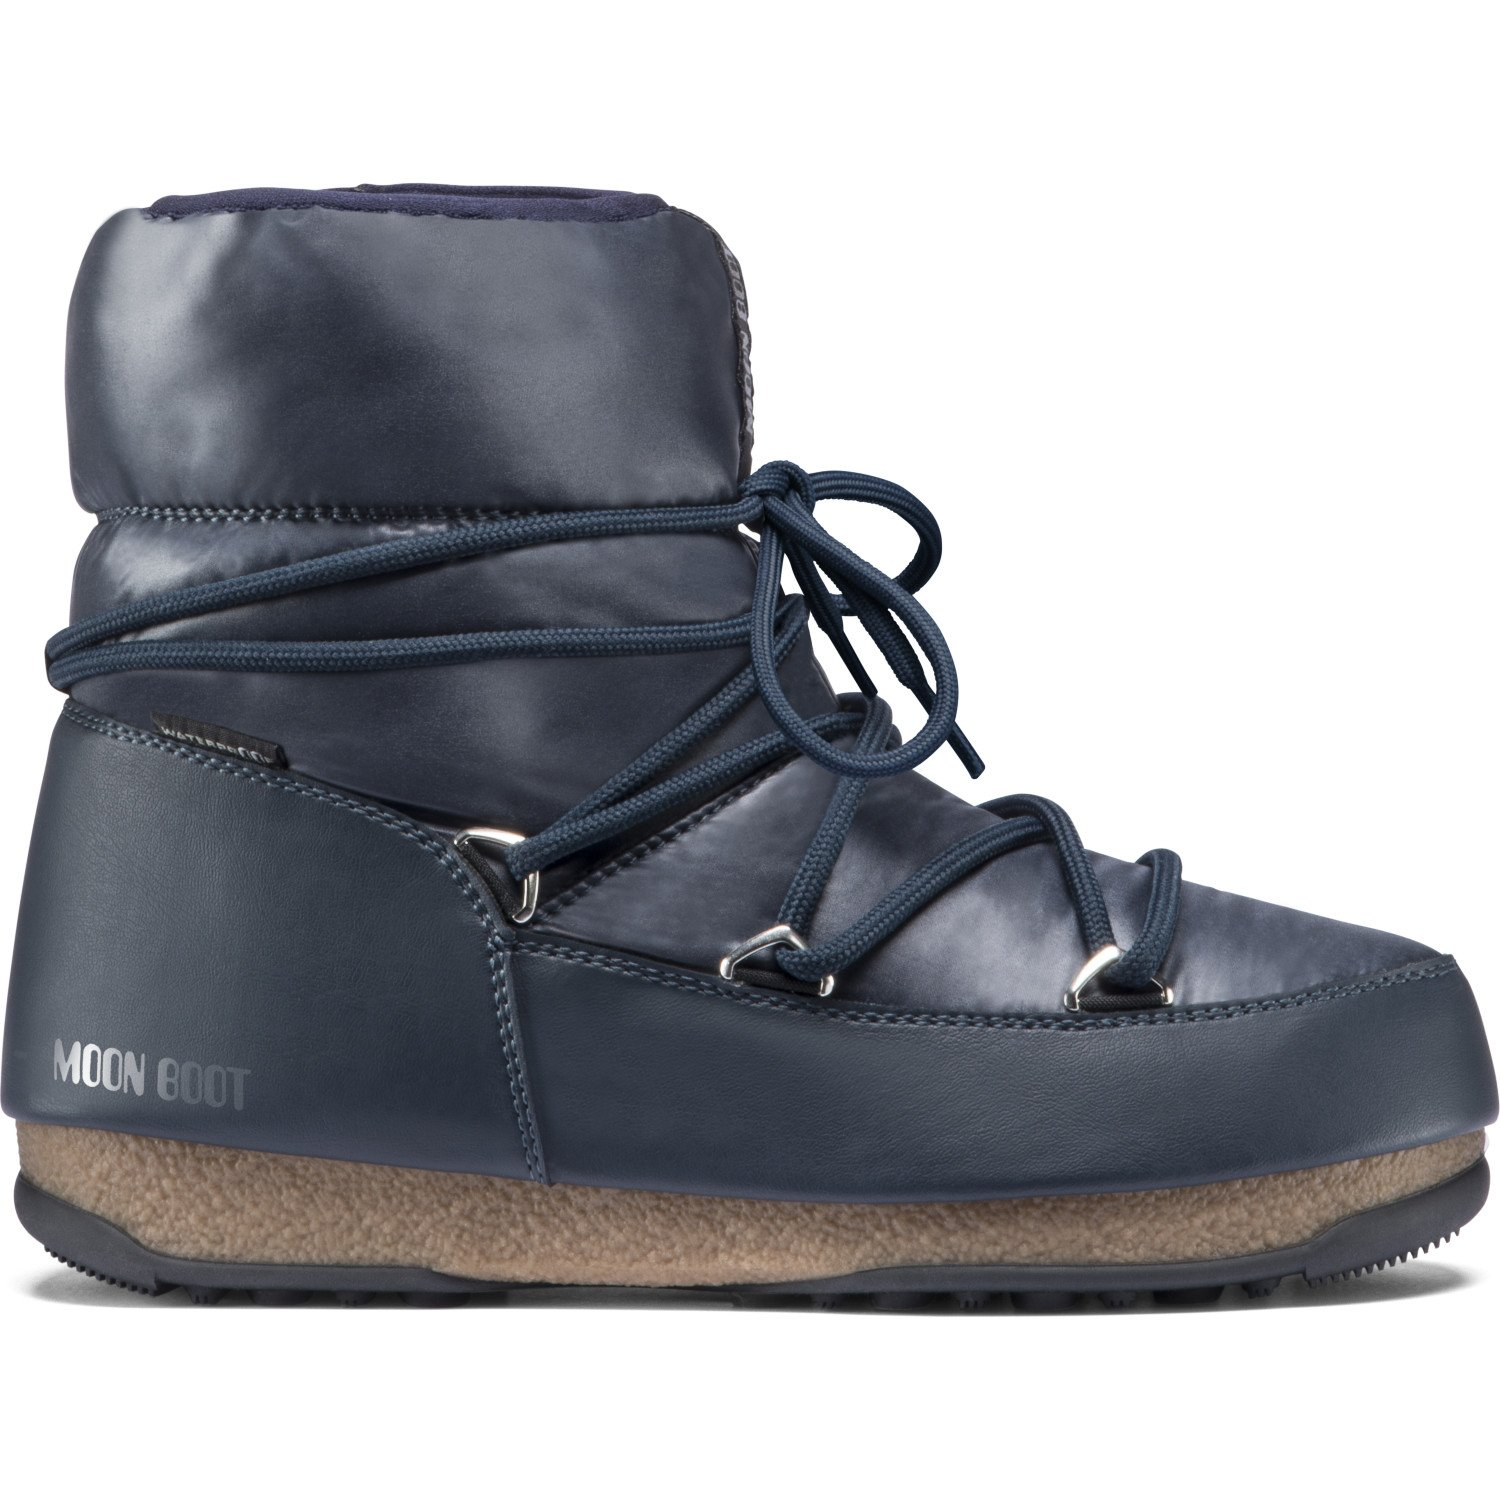 Moon Boot Moon Boot W.e. Low37 EU|Azul Vaquero